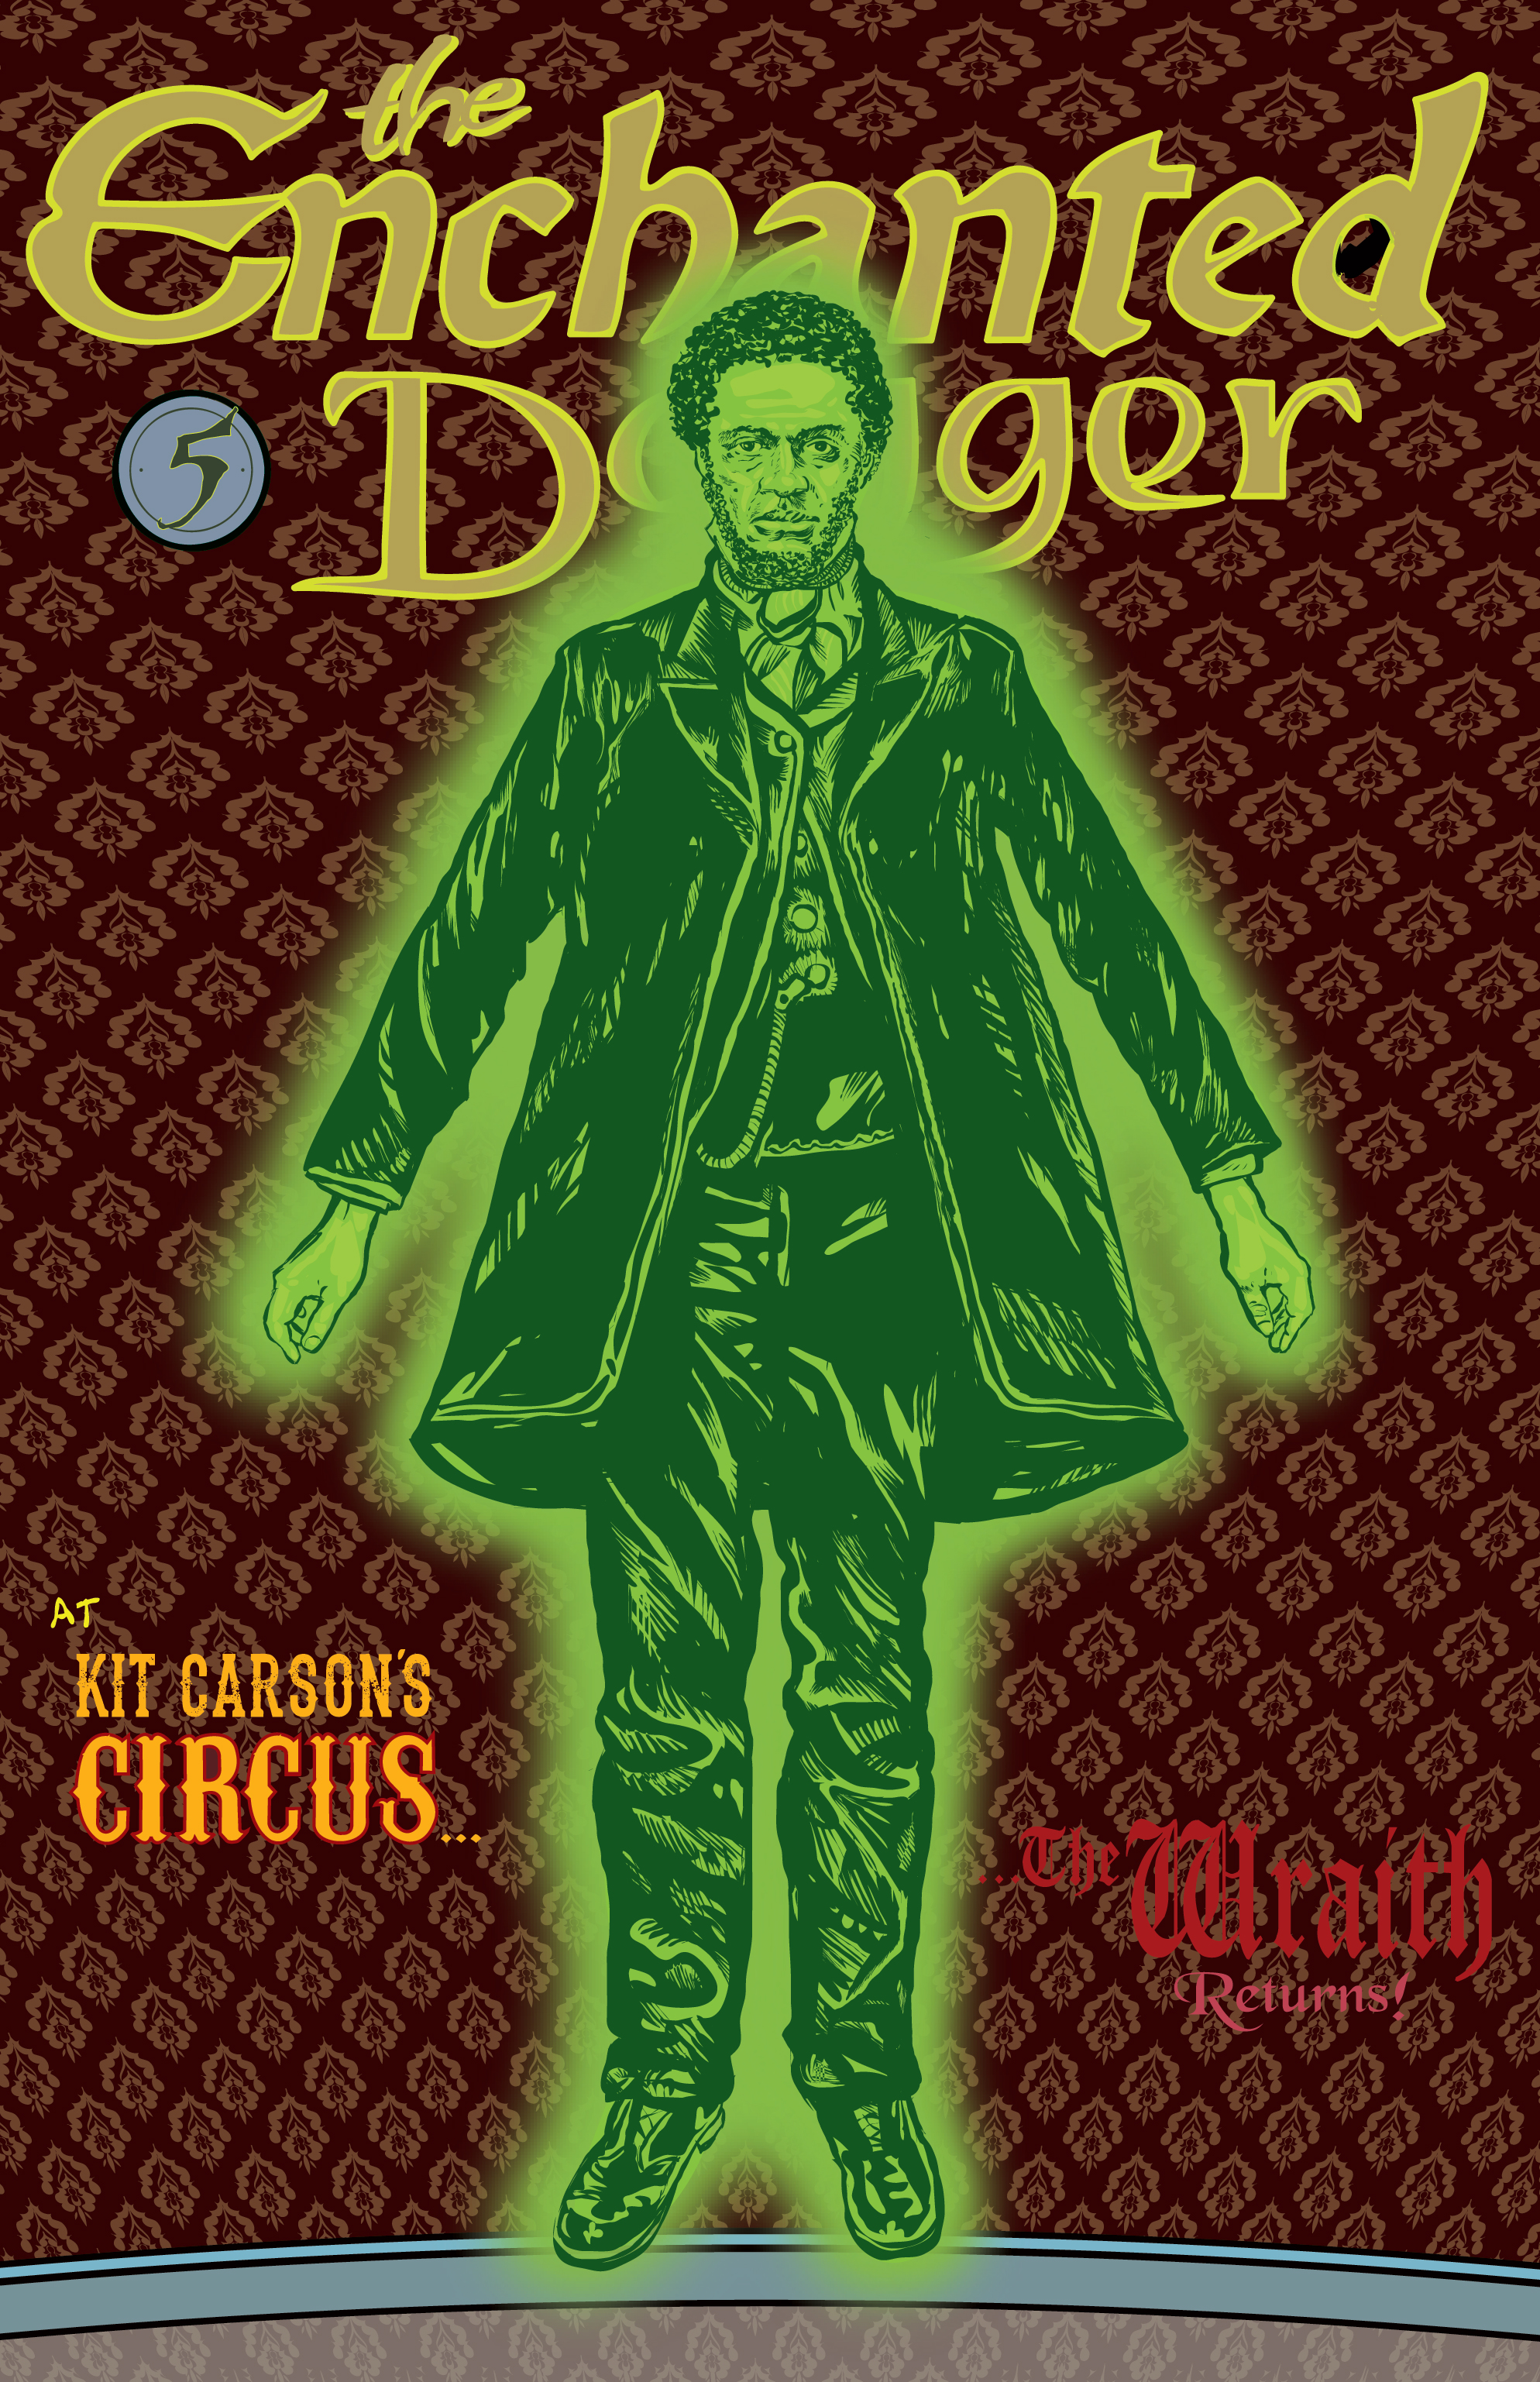 The Enchanted Dagger #5 – Cover